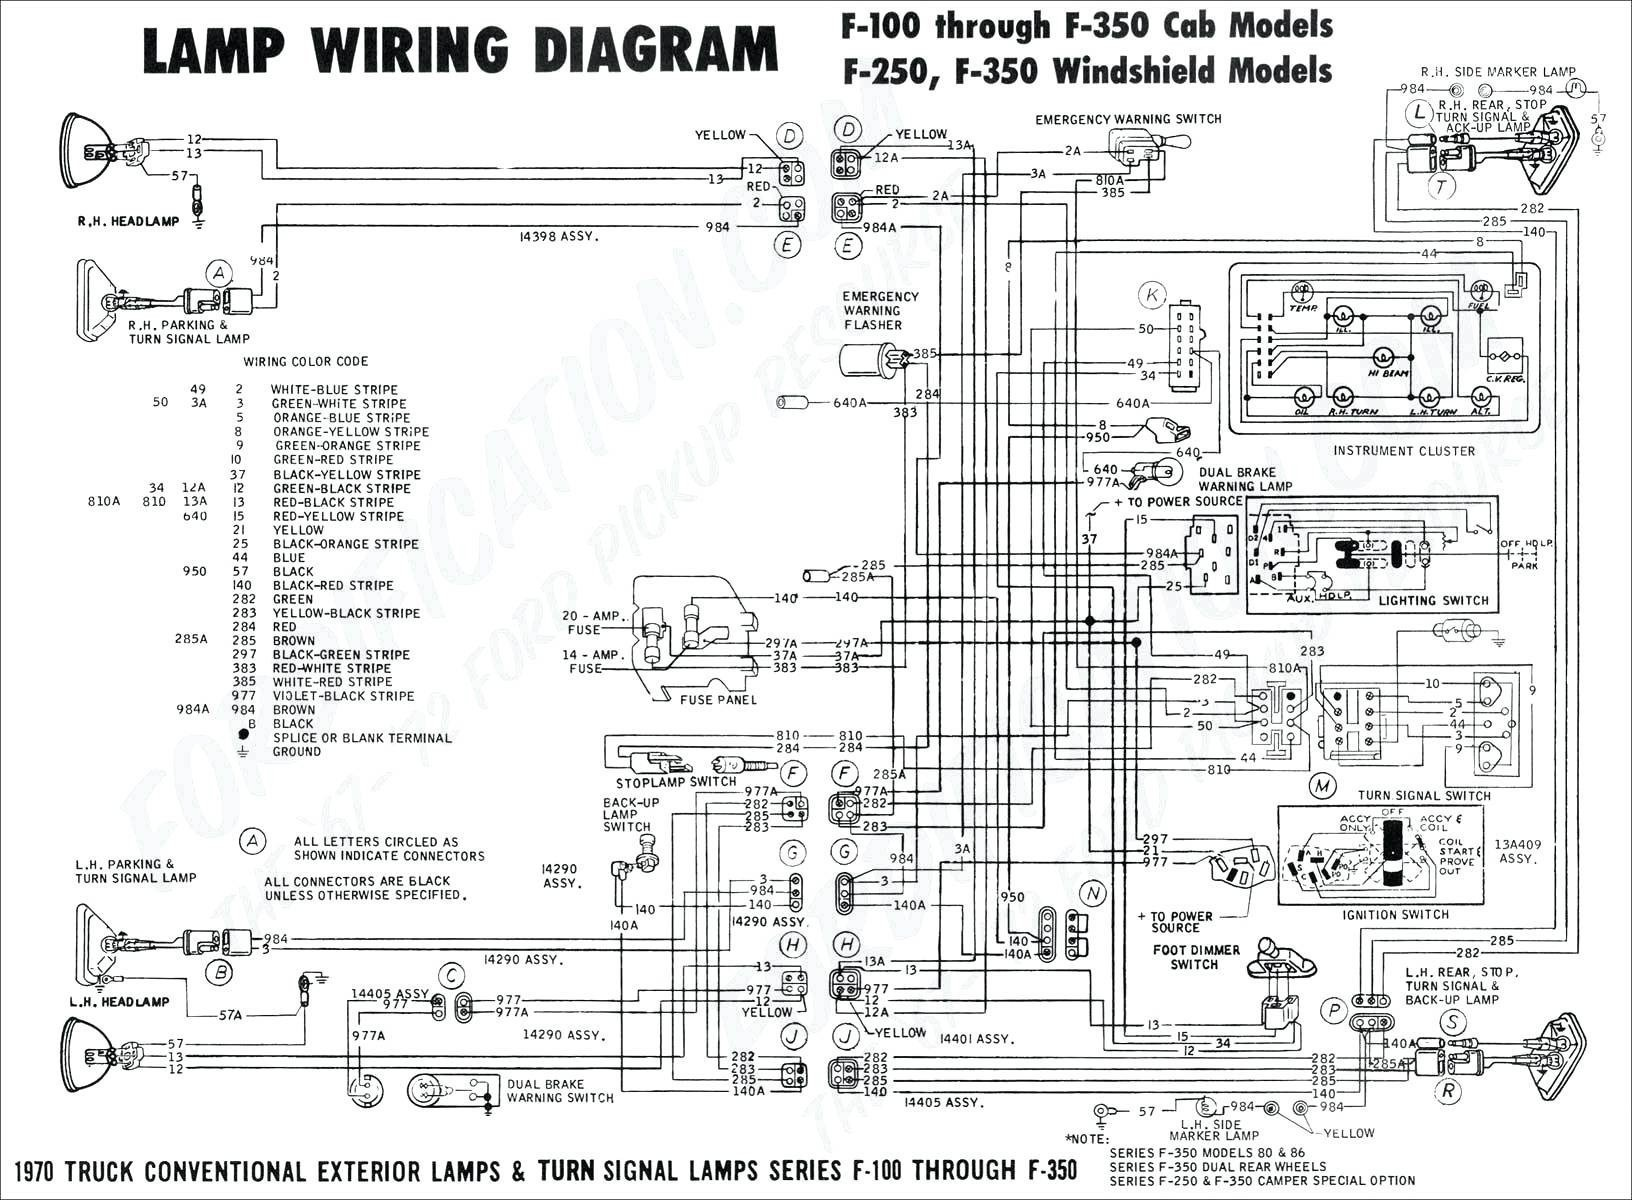 Toyota 4runner Engine Diagram 1997 4runner Fuse Diagram Wiring Diagram Datasource Of Toyota 4runner Engine Diagram toyota 4runner Technical Information